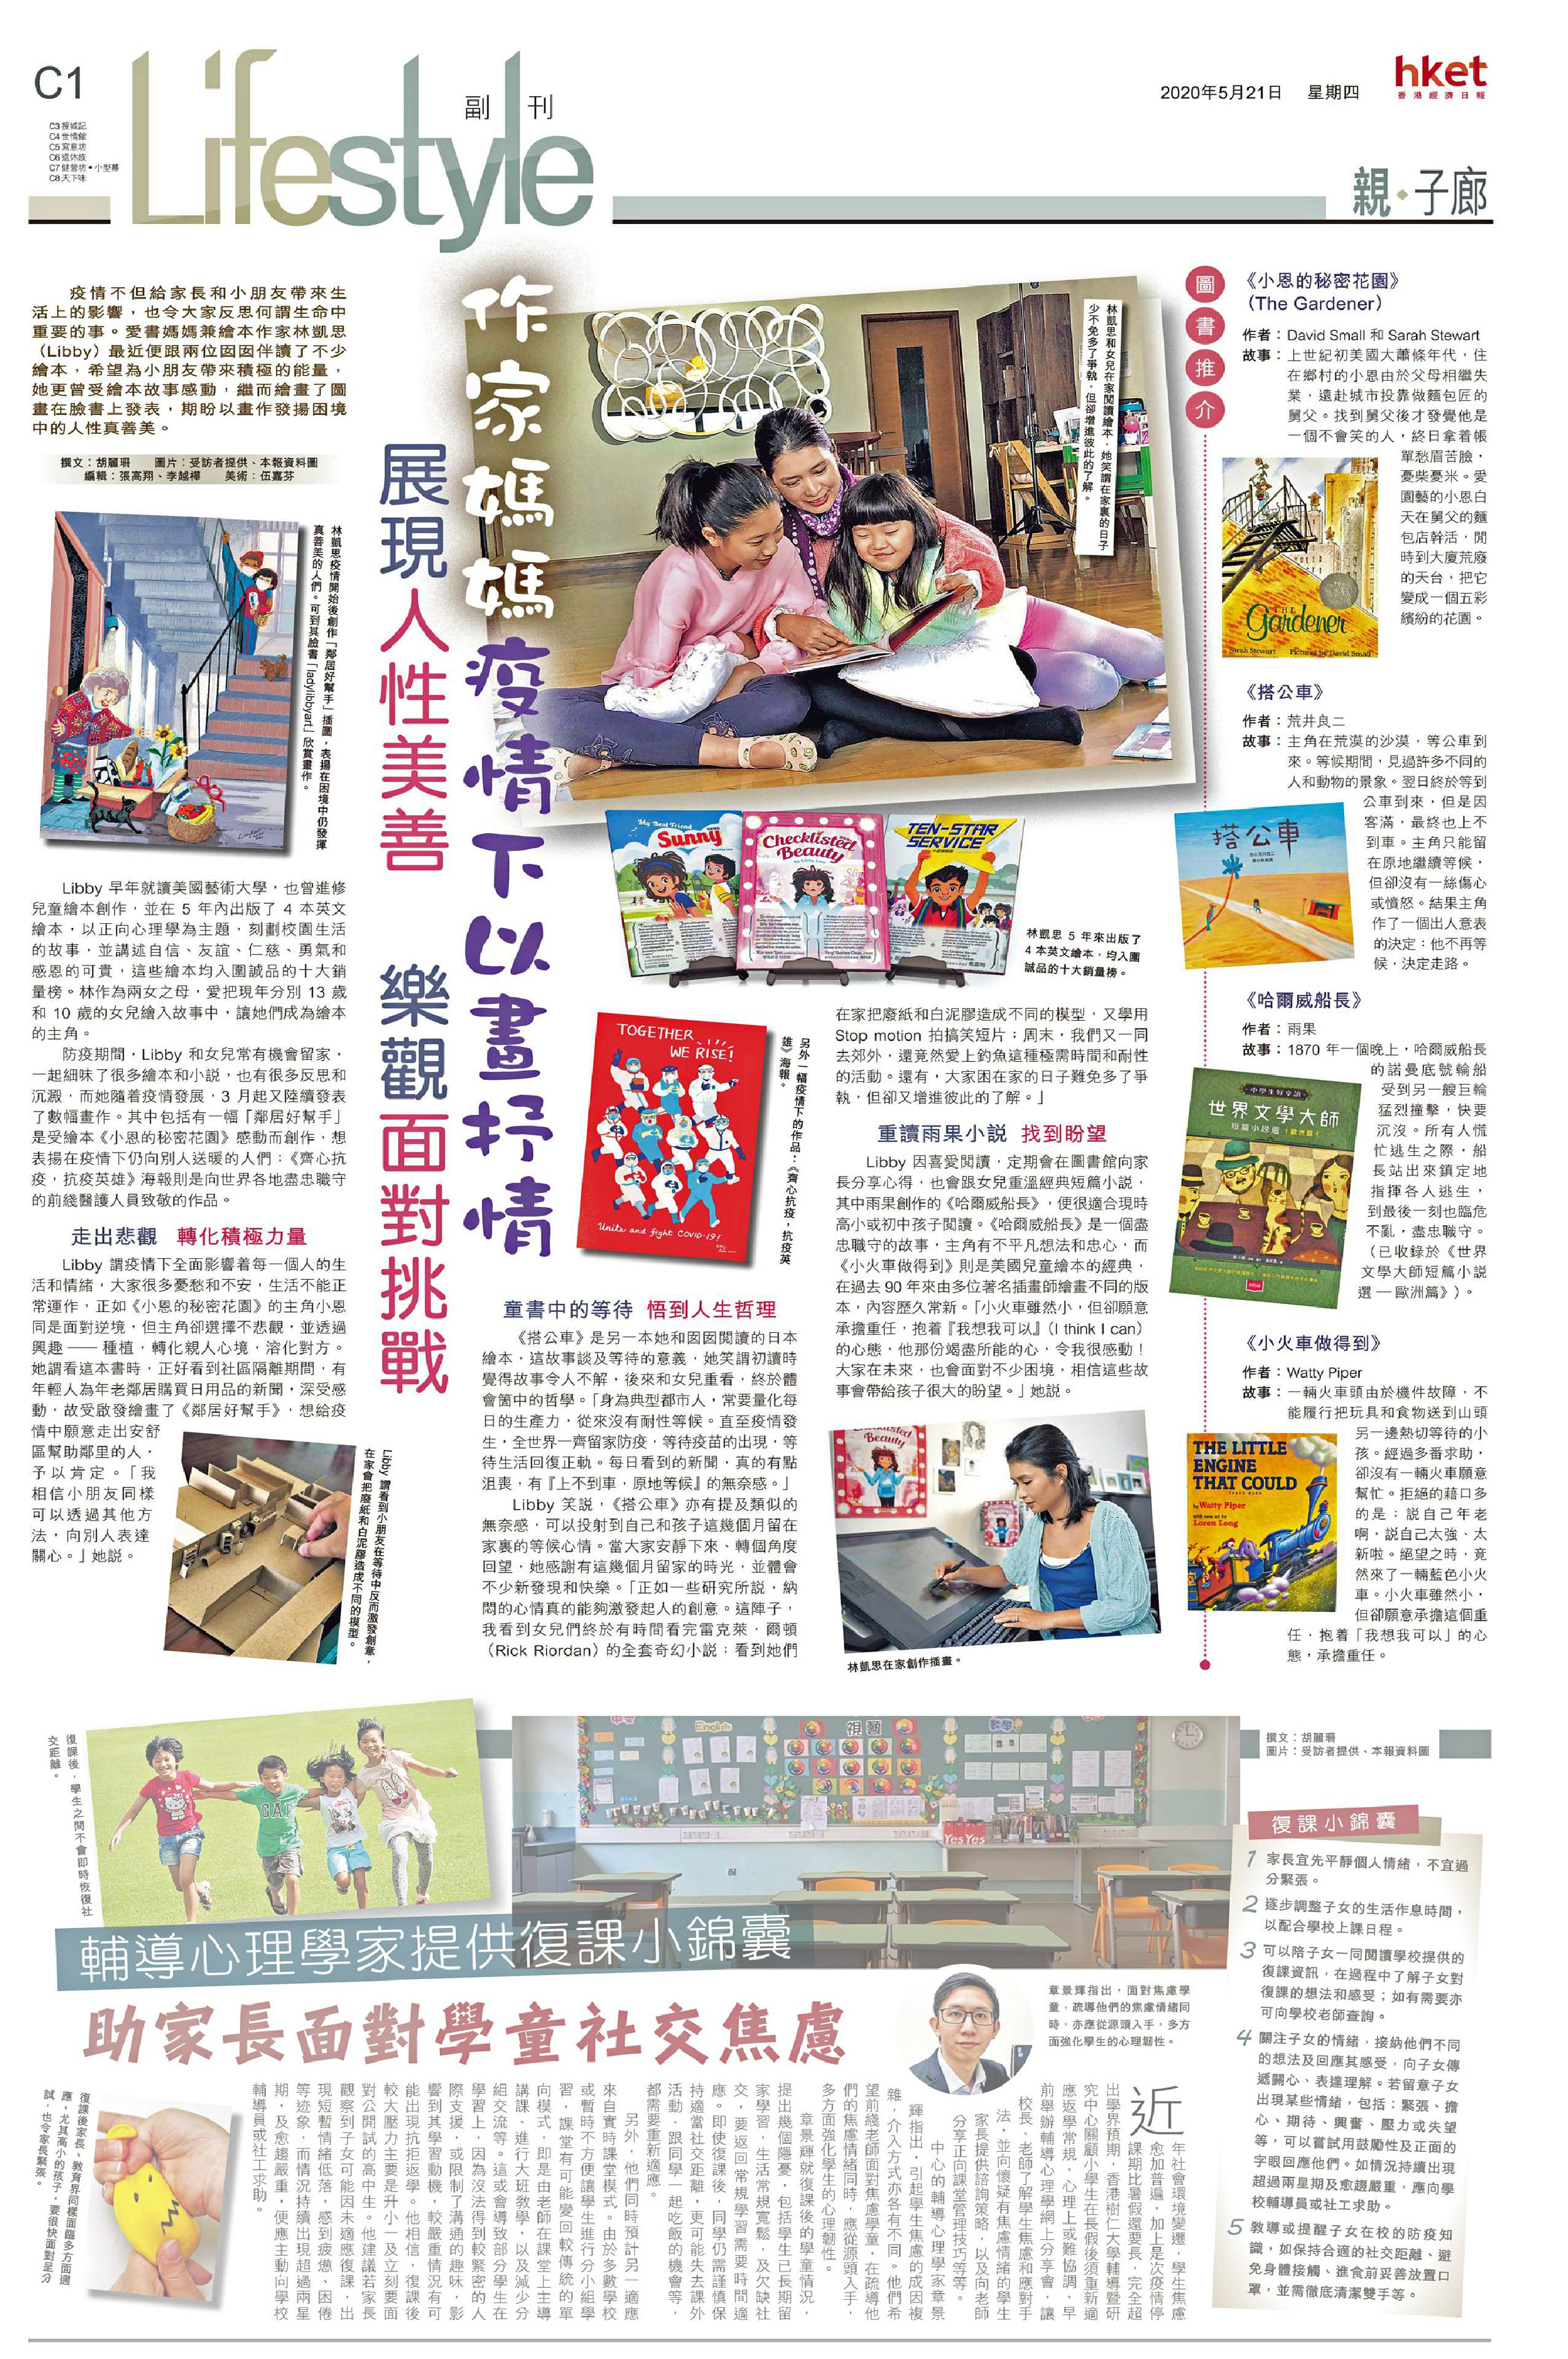 Hong Kong Economic Times / Lifestyle / May 2020